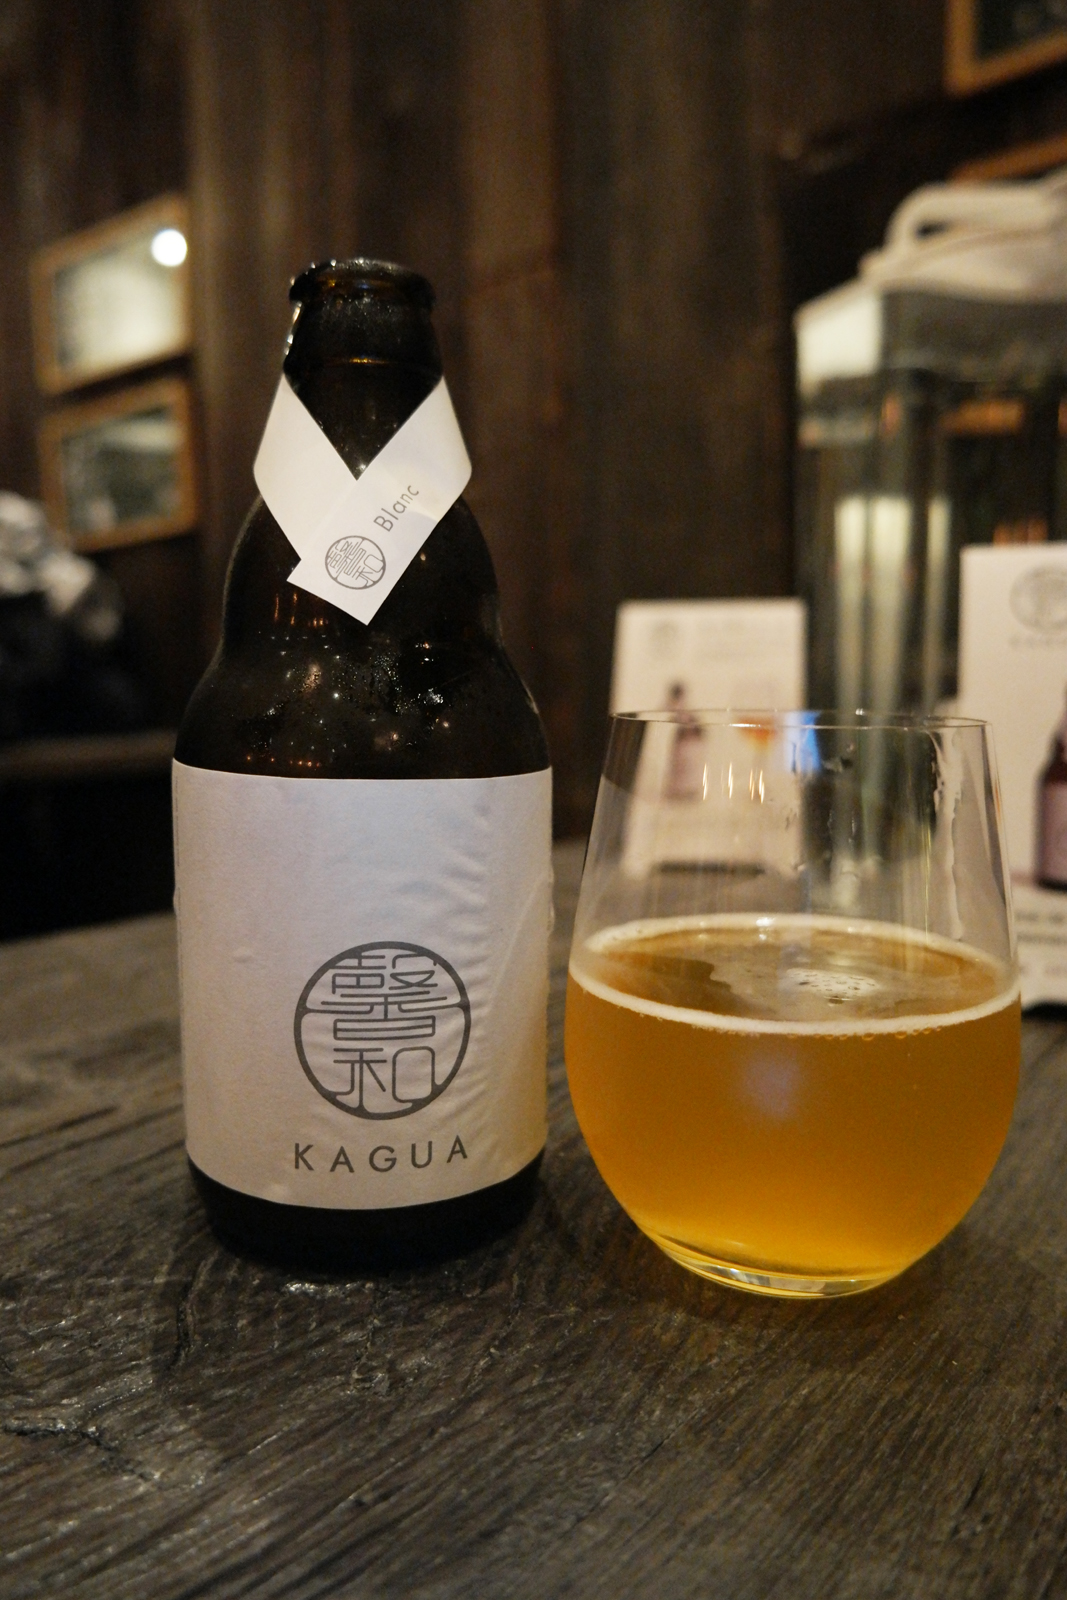 Kagua japanese scented ale arome de yuzu frais bière table du restaurant aponais oishinoya maison du très bon Gyudon Passage des Panoramas paris chef Shinichi Sato photo blog usofparis